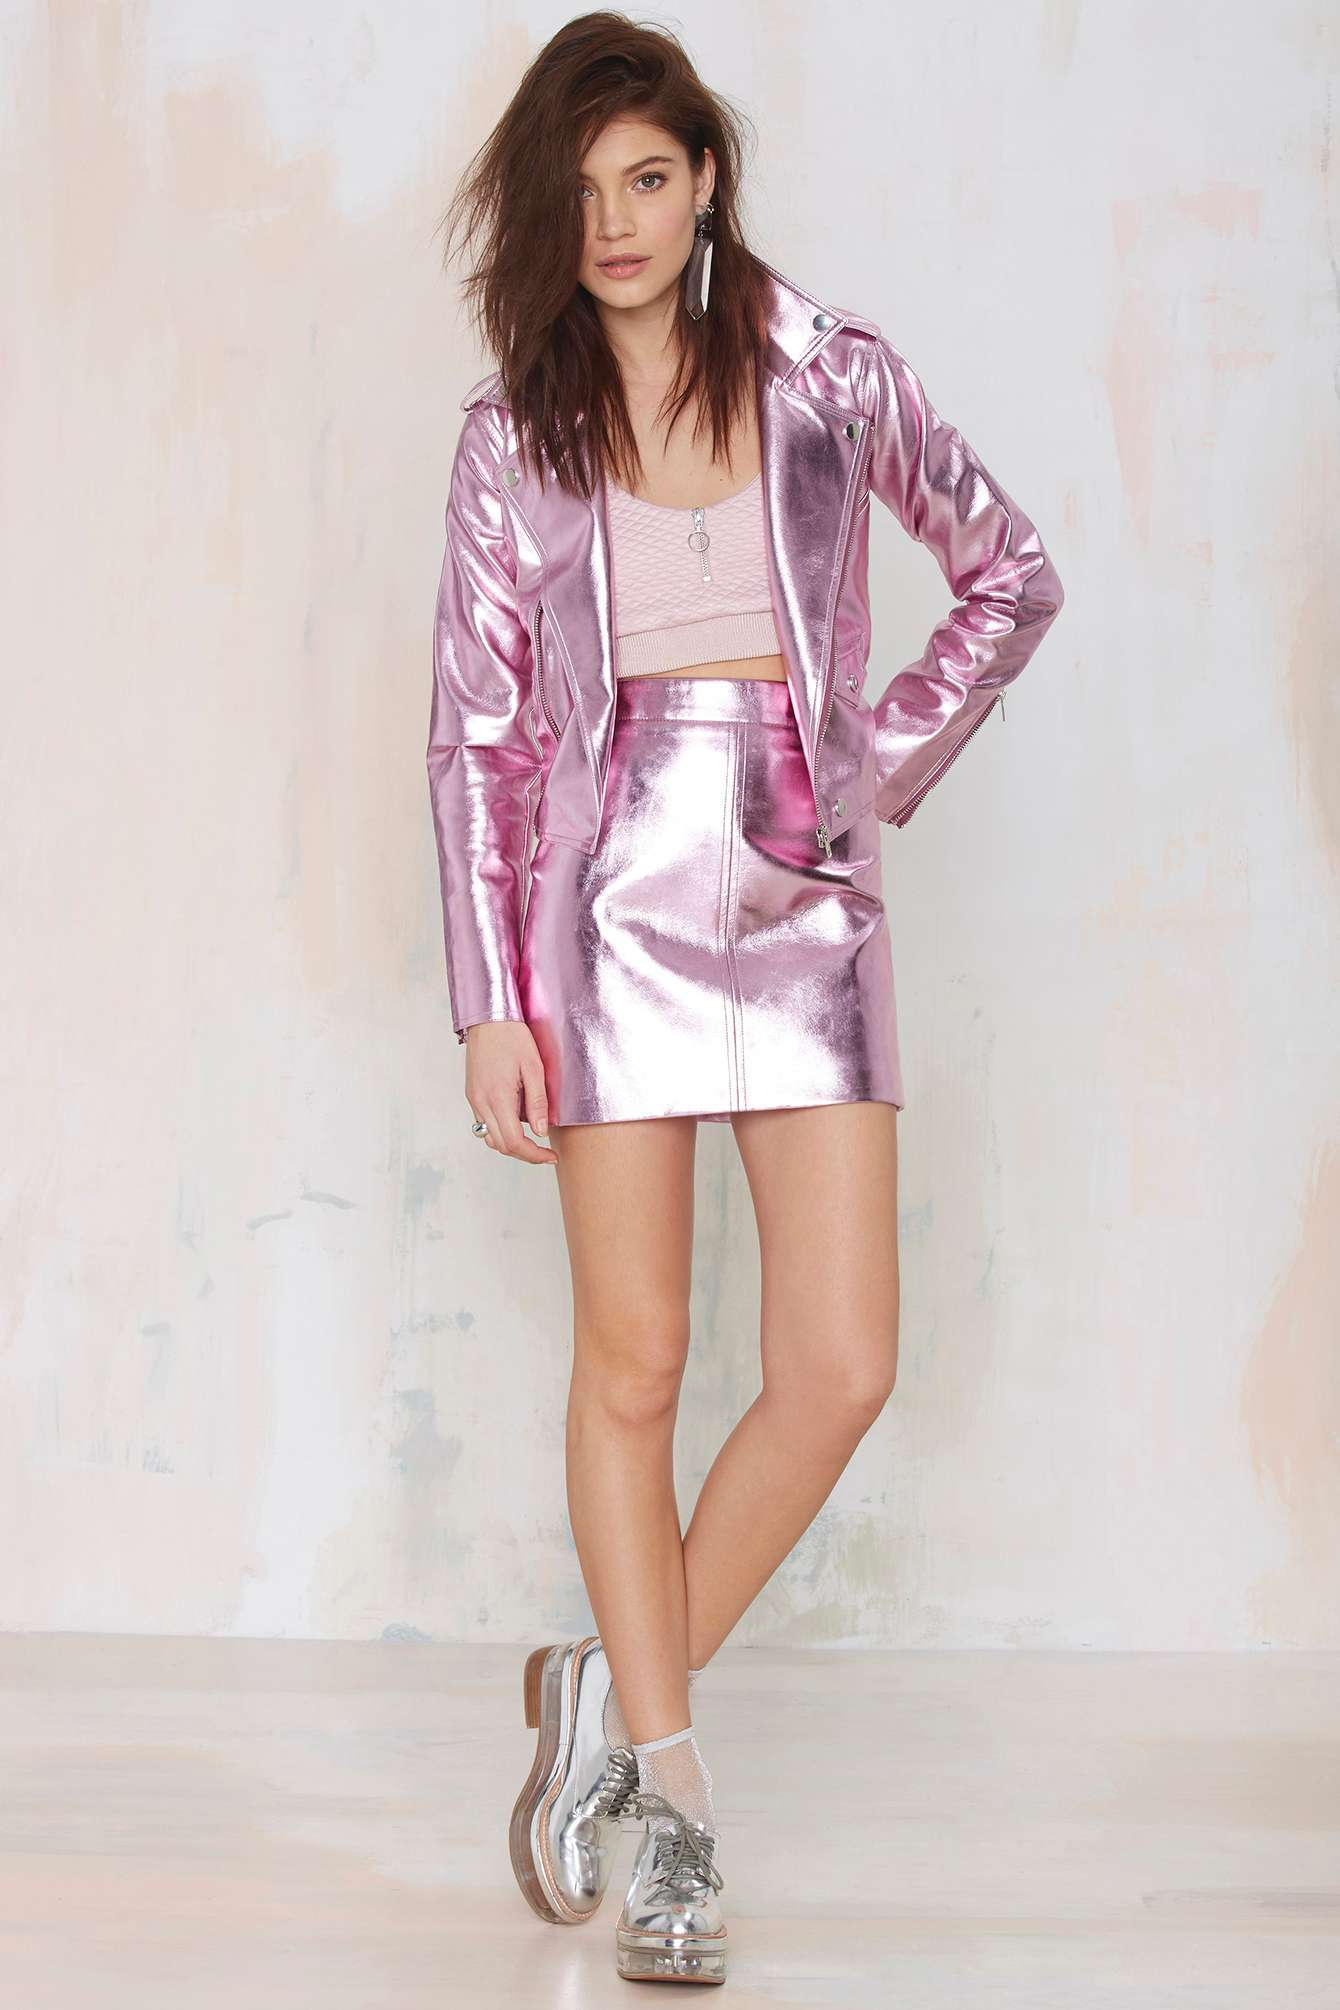 Nasty gal Pippa Lynn Super Freak Vegan Leather Mini Skirt in Pink ...